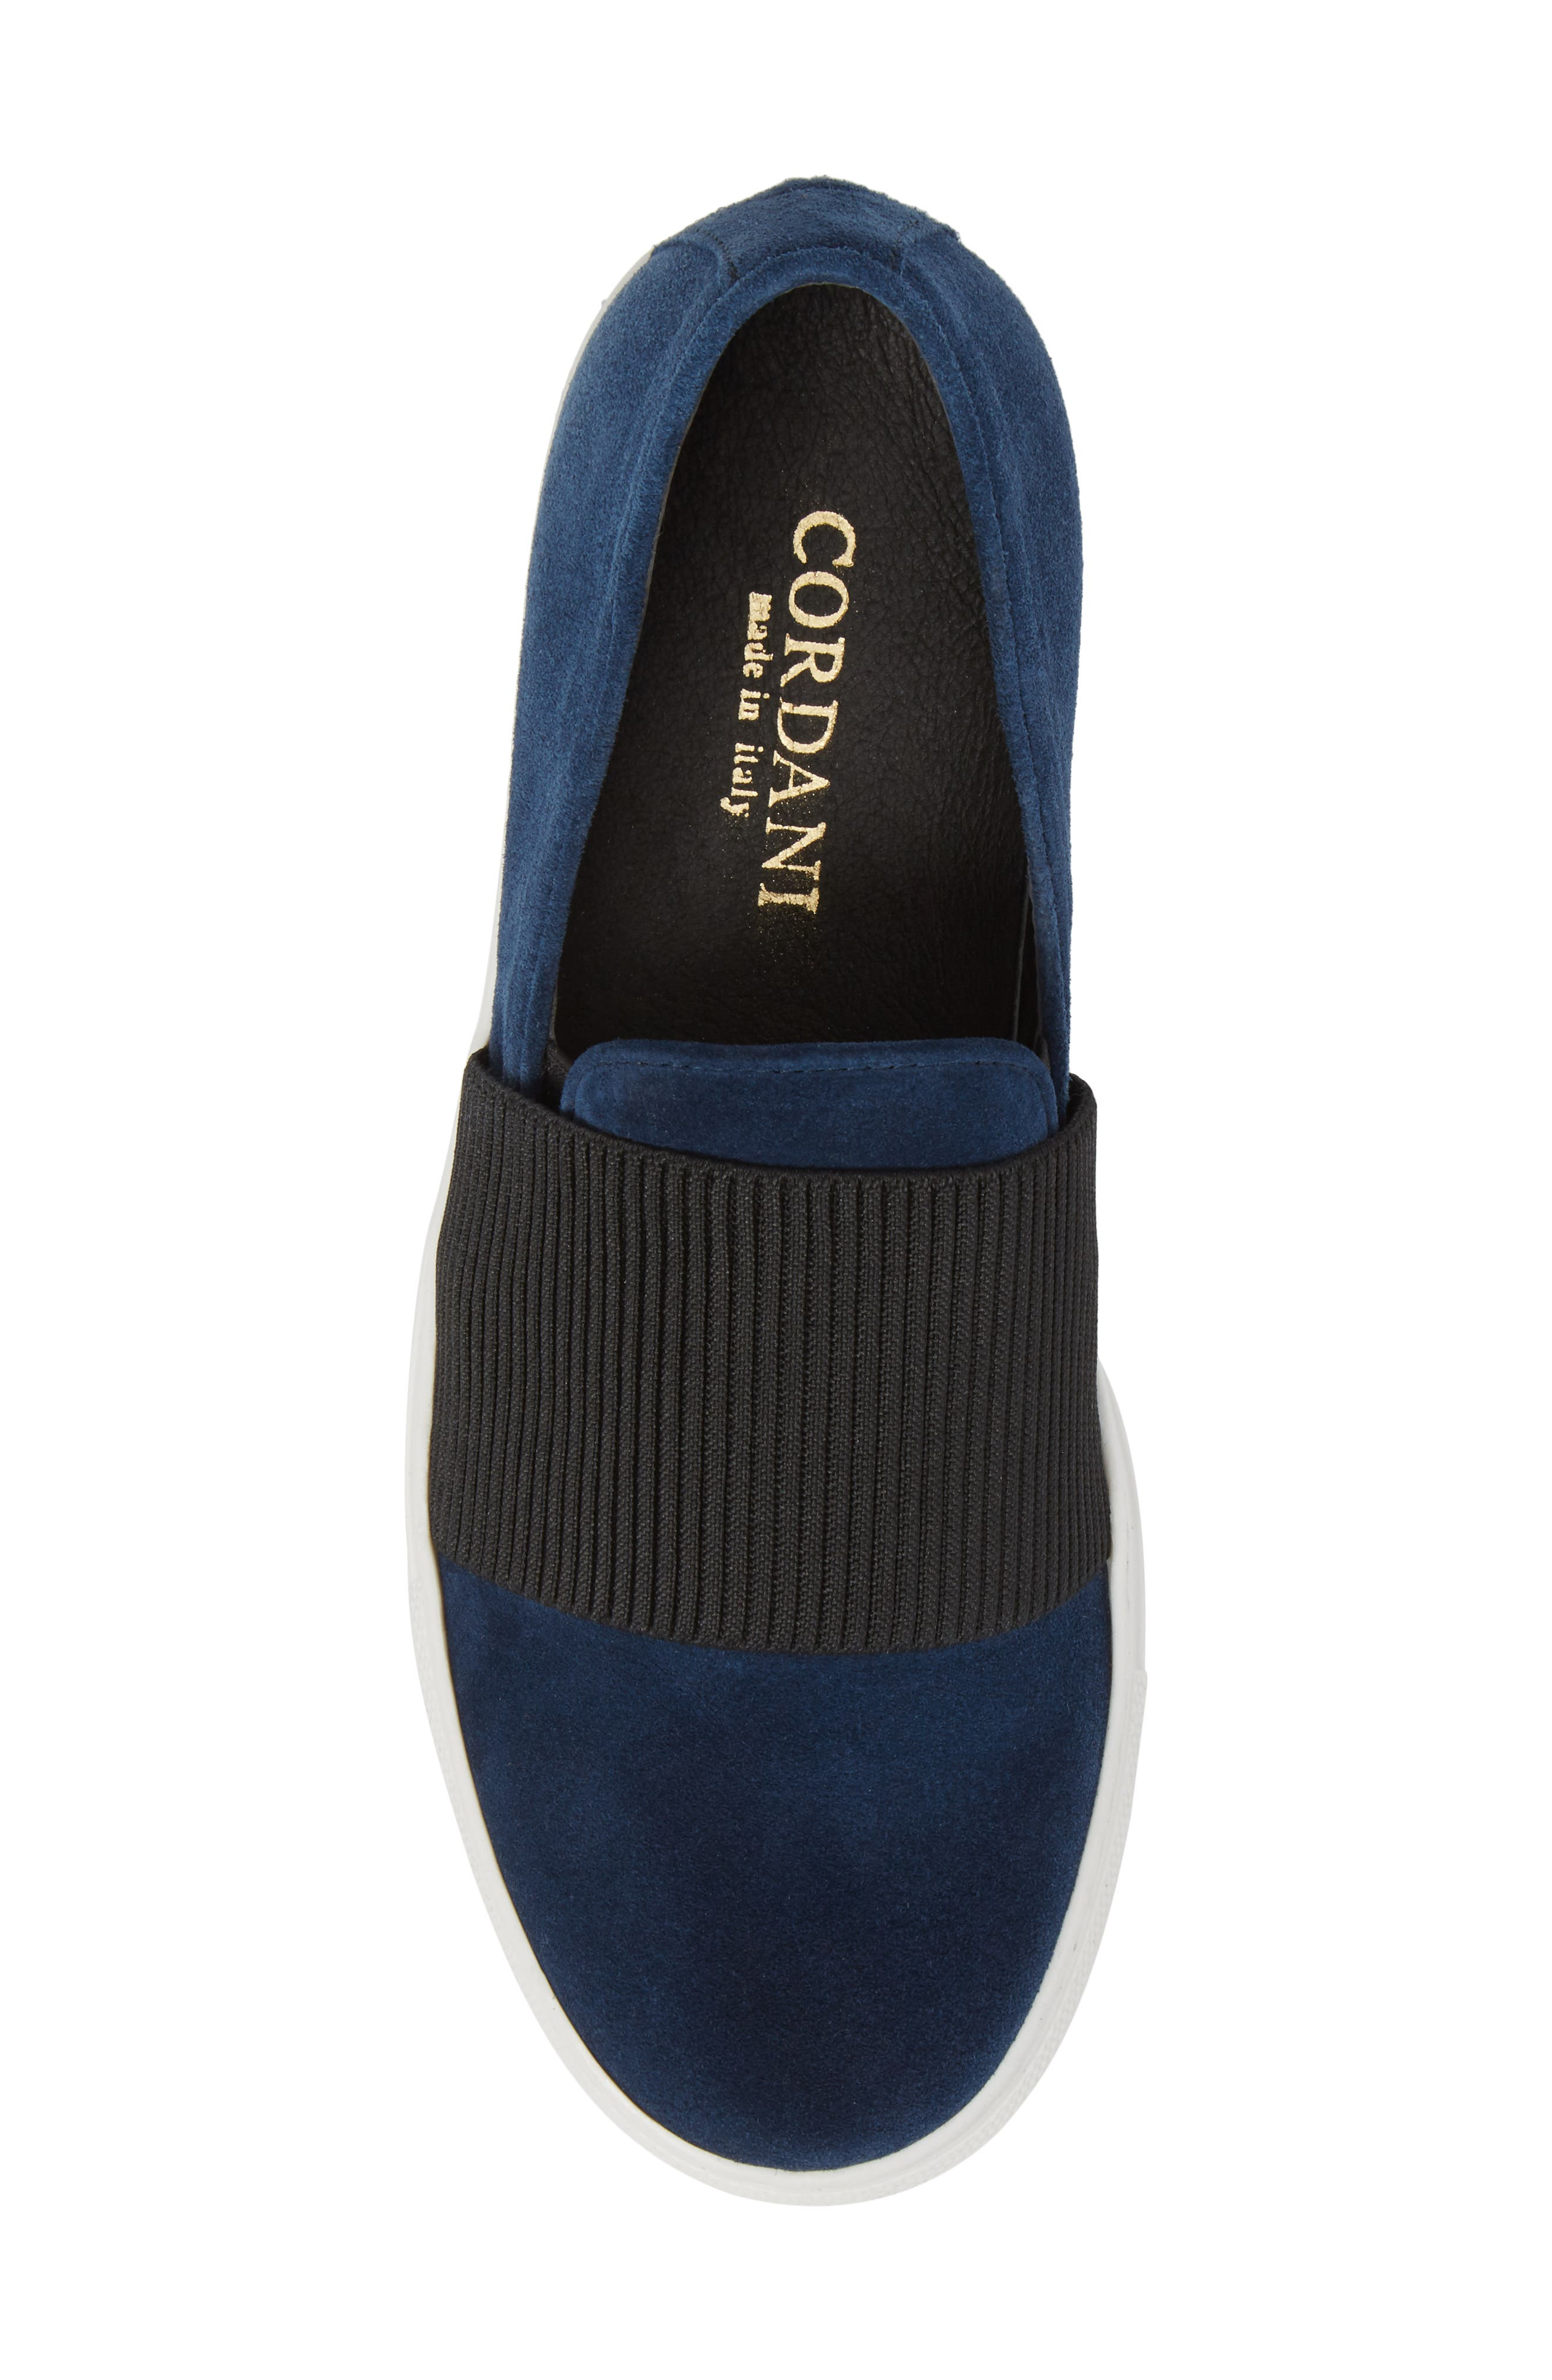 Otto Slip-On Sneaker,                             Alternate thumbnail 5, color,                             Navy Suede